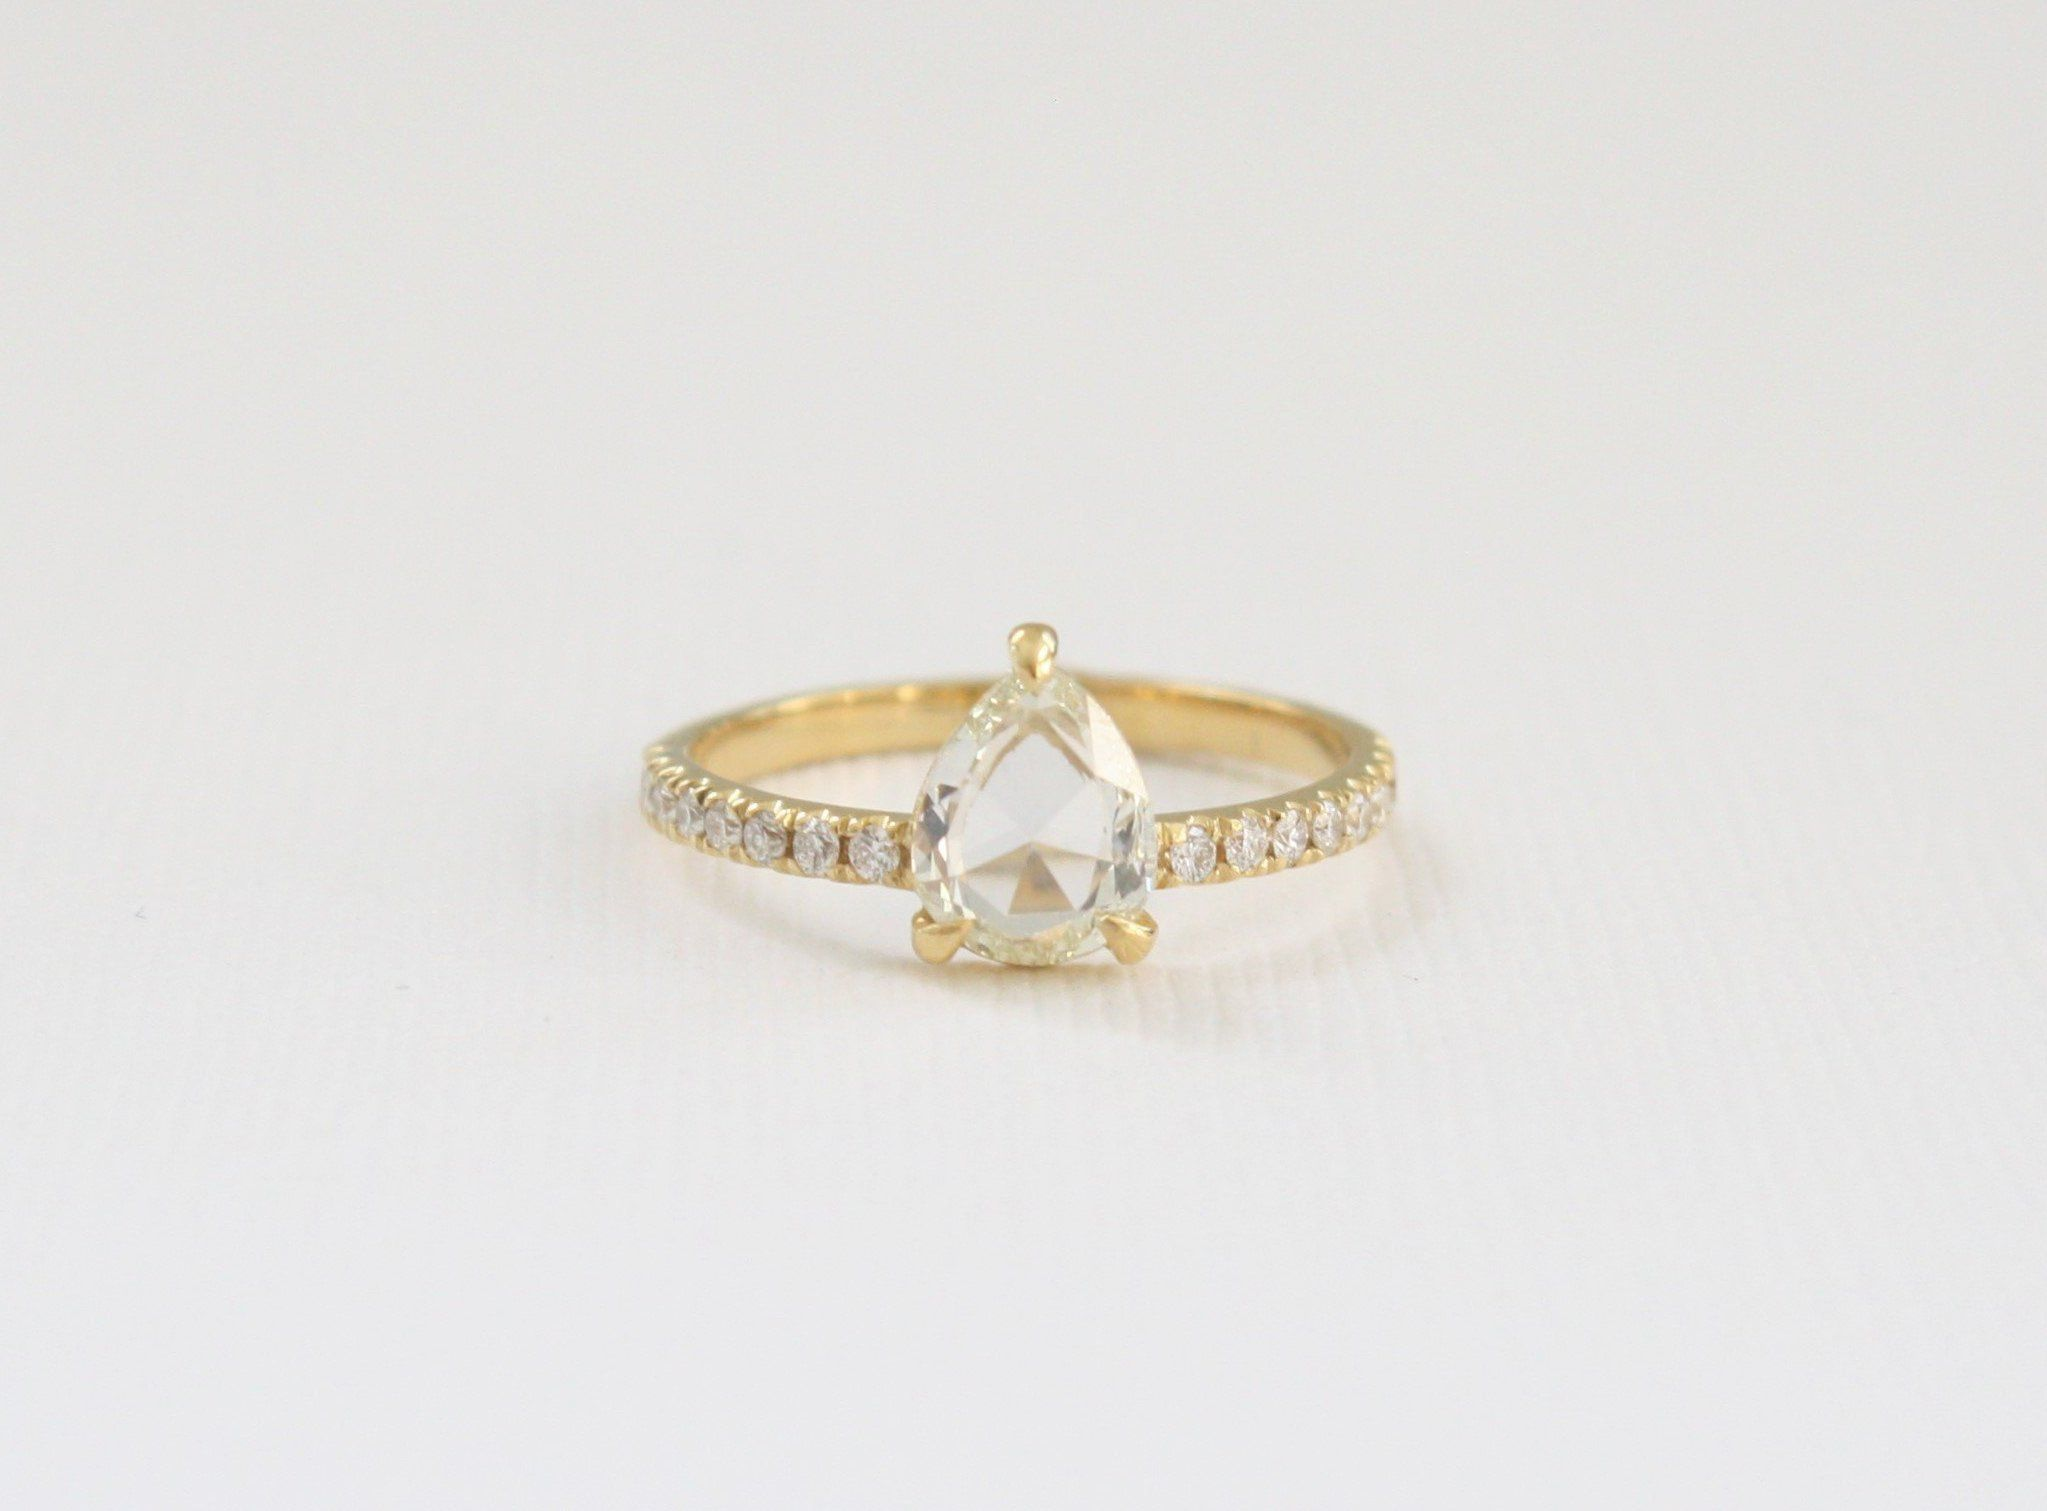 Rose cut pear shaped diamond solitaire ring in k yellow gold